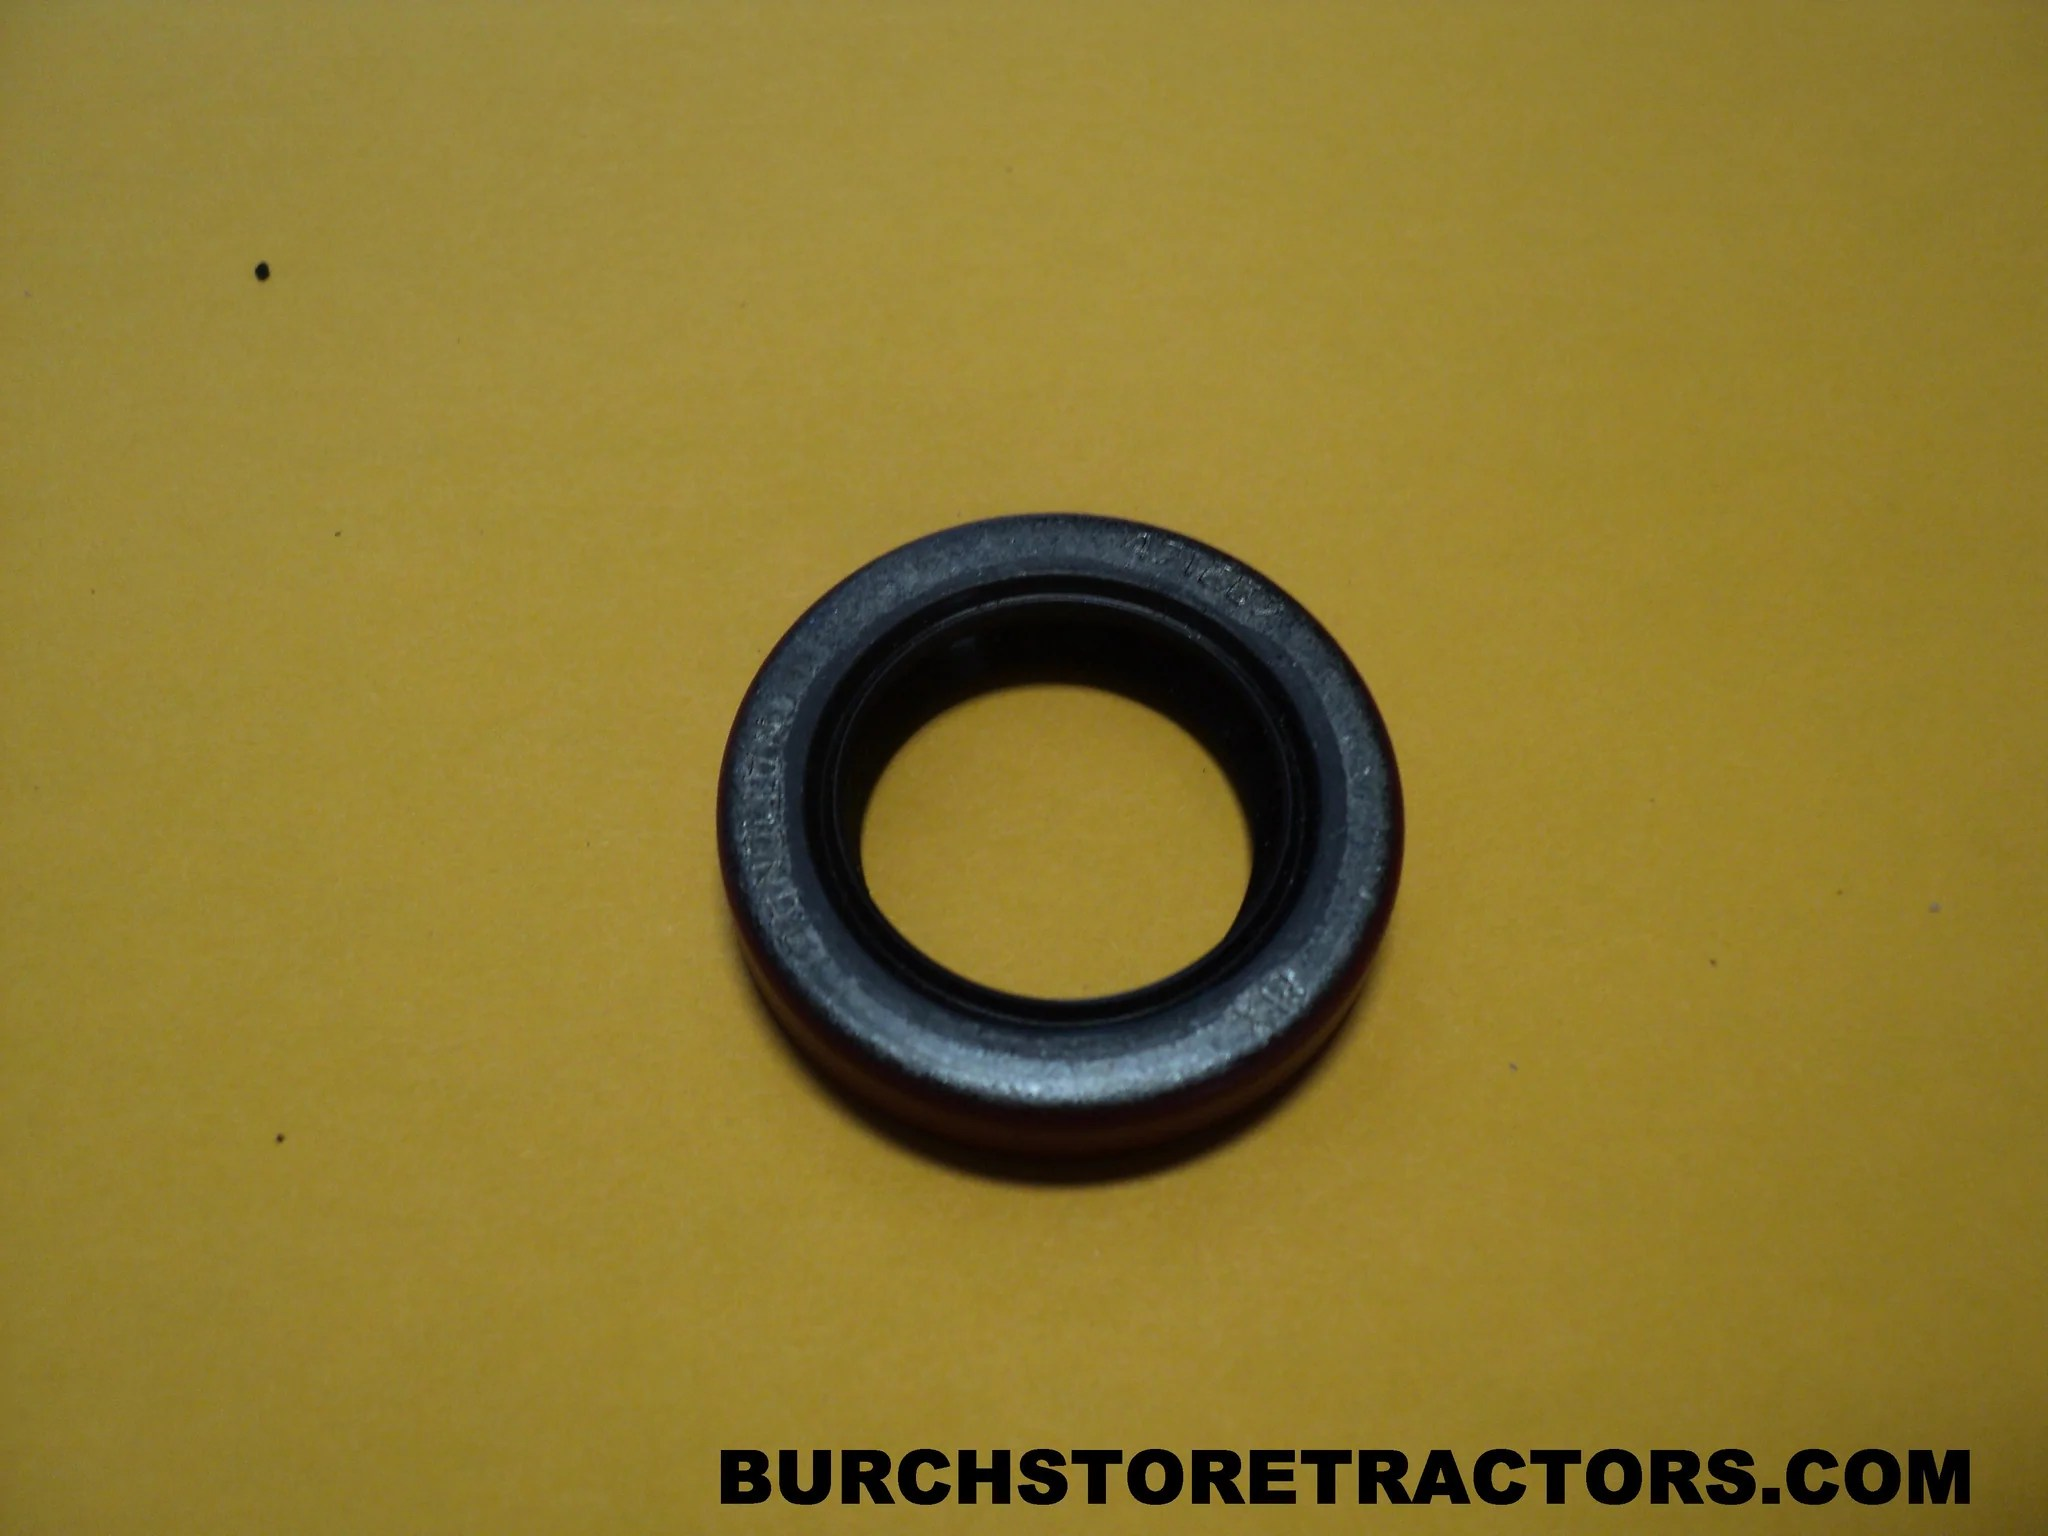 small resolution of new top steering shaft oil seal for ih farmall cub or cub loboy tracto burch store tractors